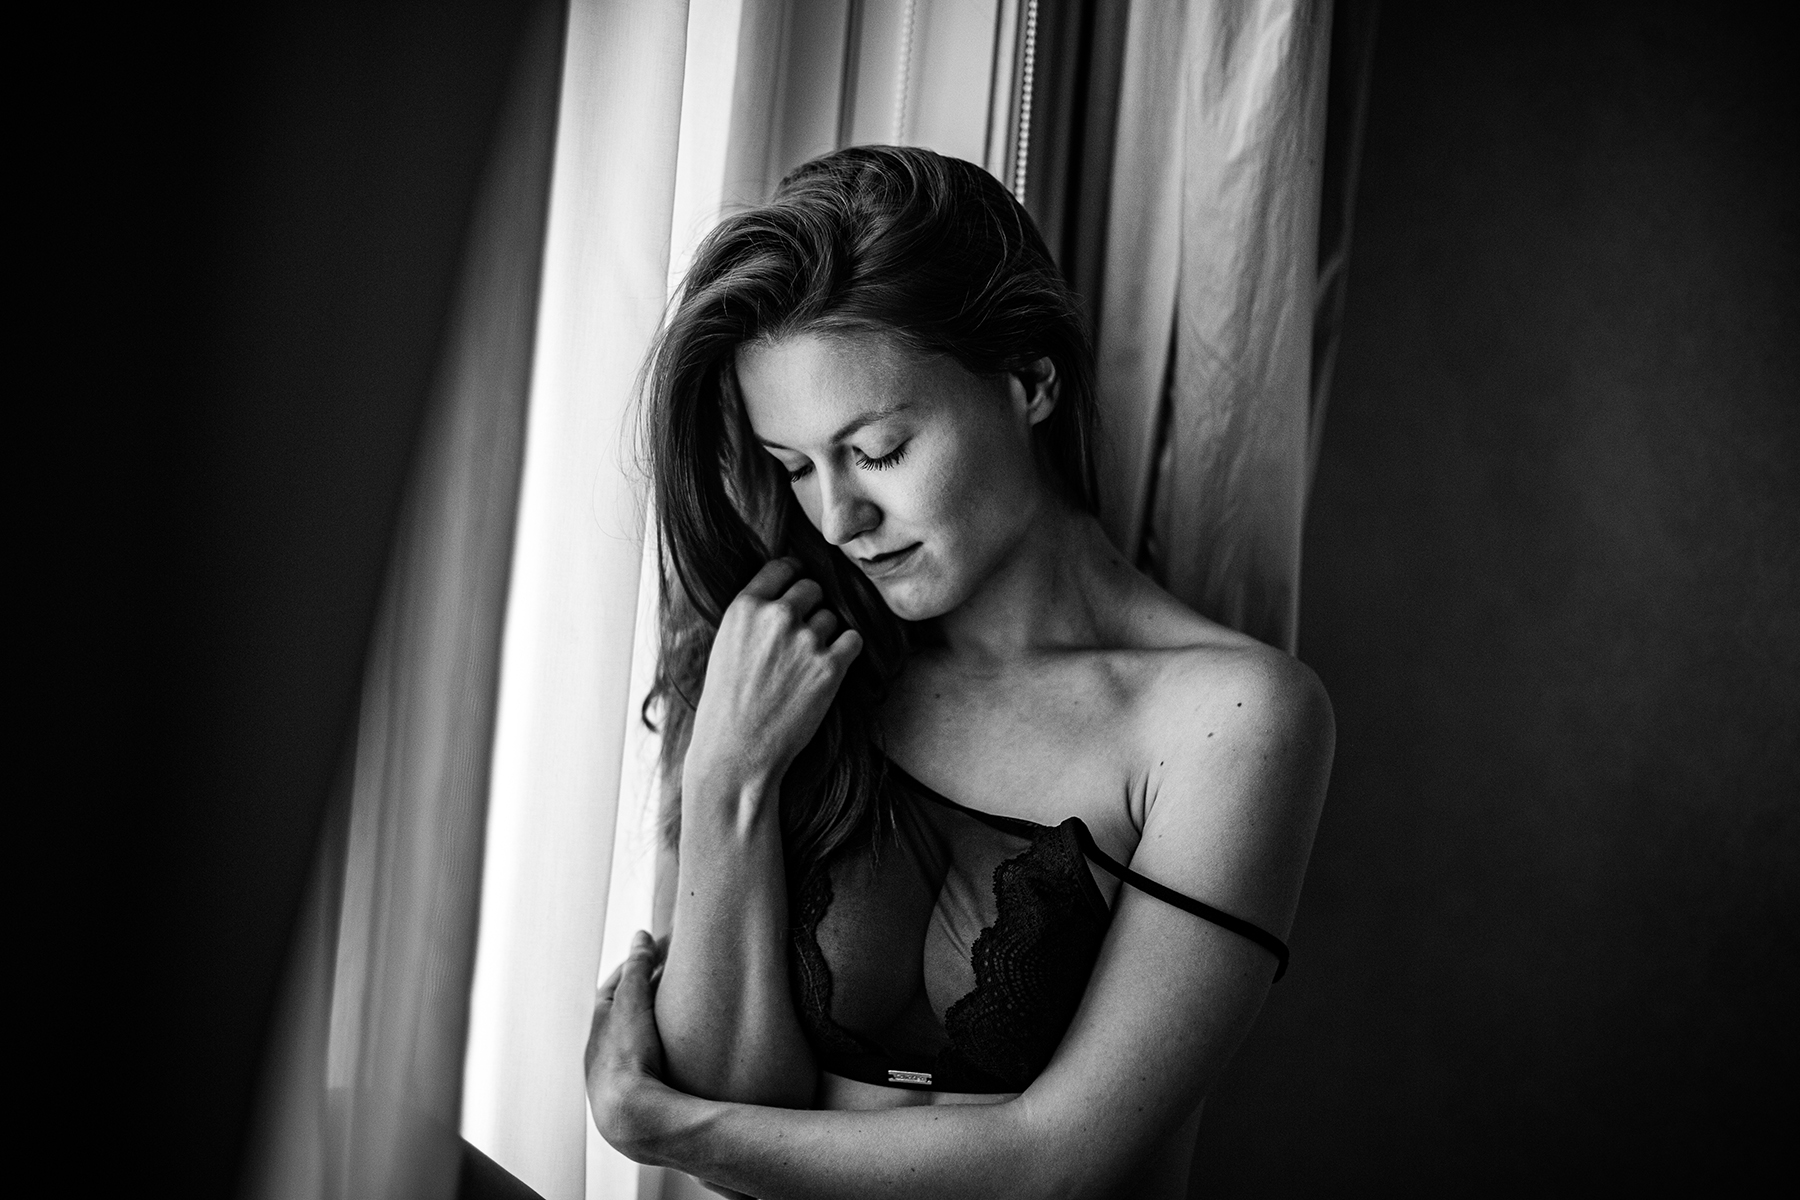 Photographe boudoir à Prague. Séance photo boudoir à Prague